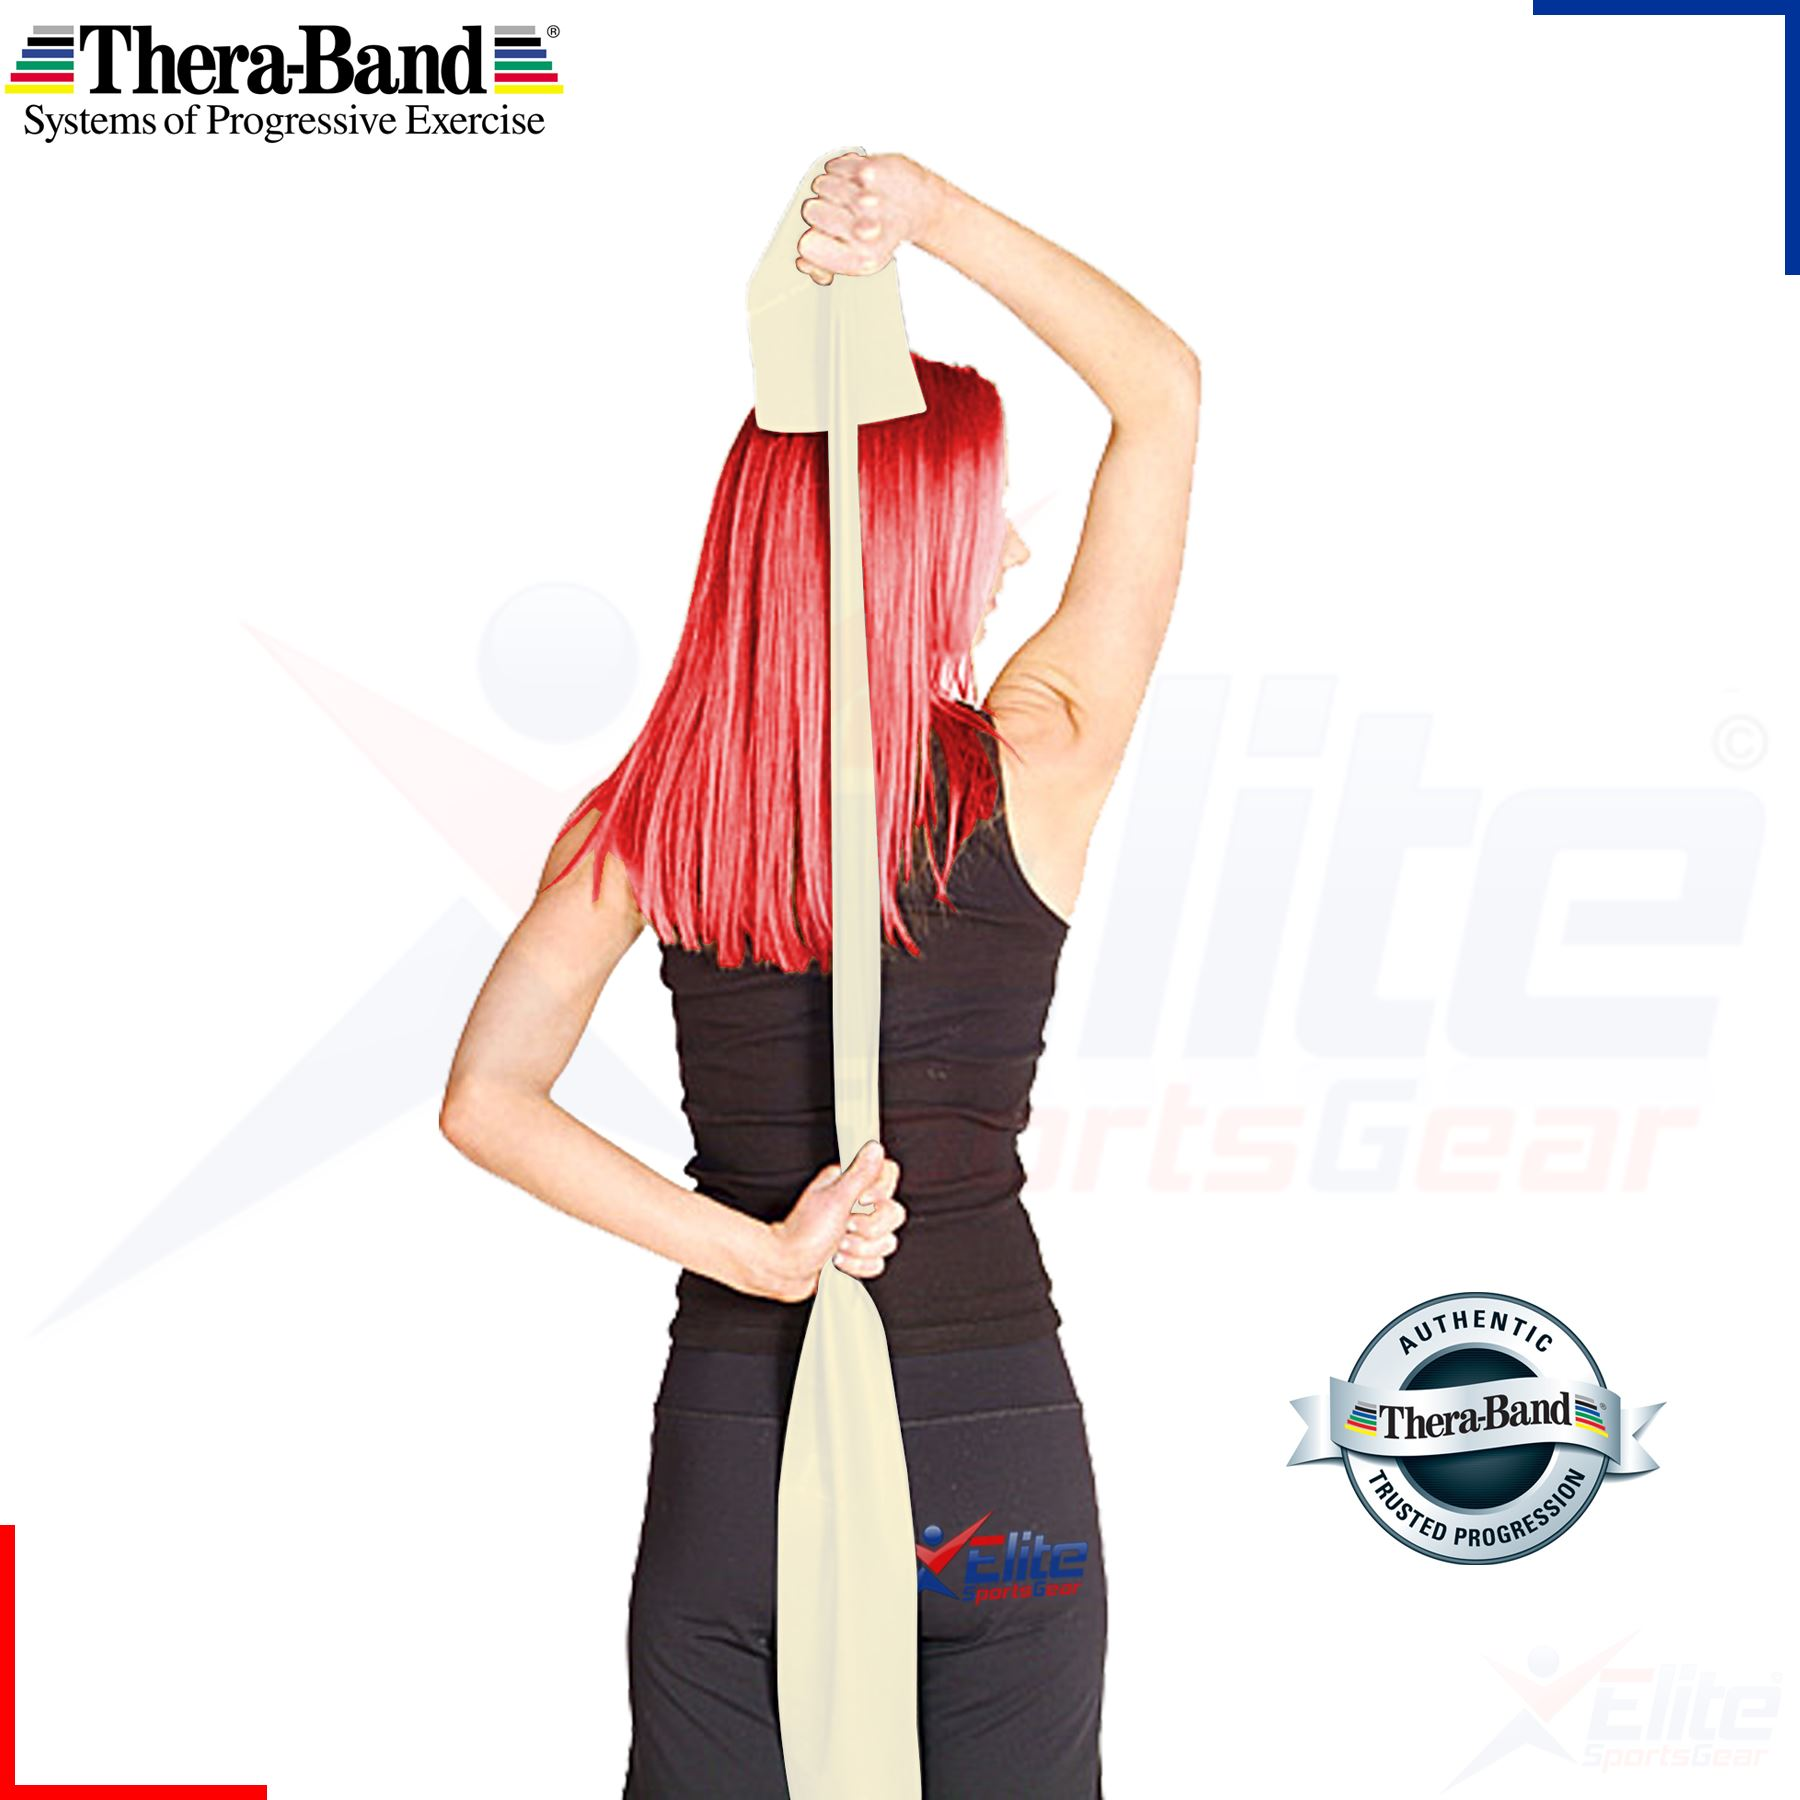 Theraband Resistance Bands Thera-Band NHS Yoga Exercise